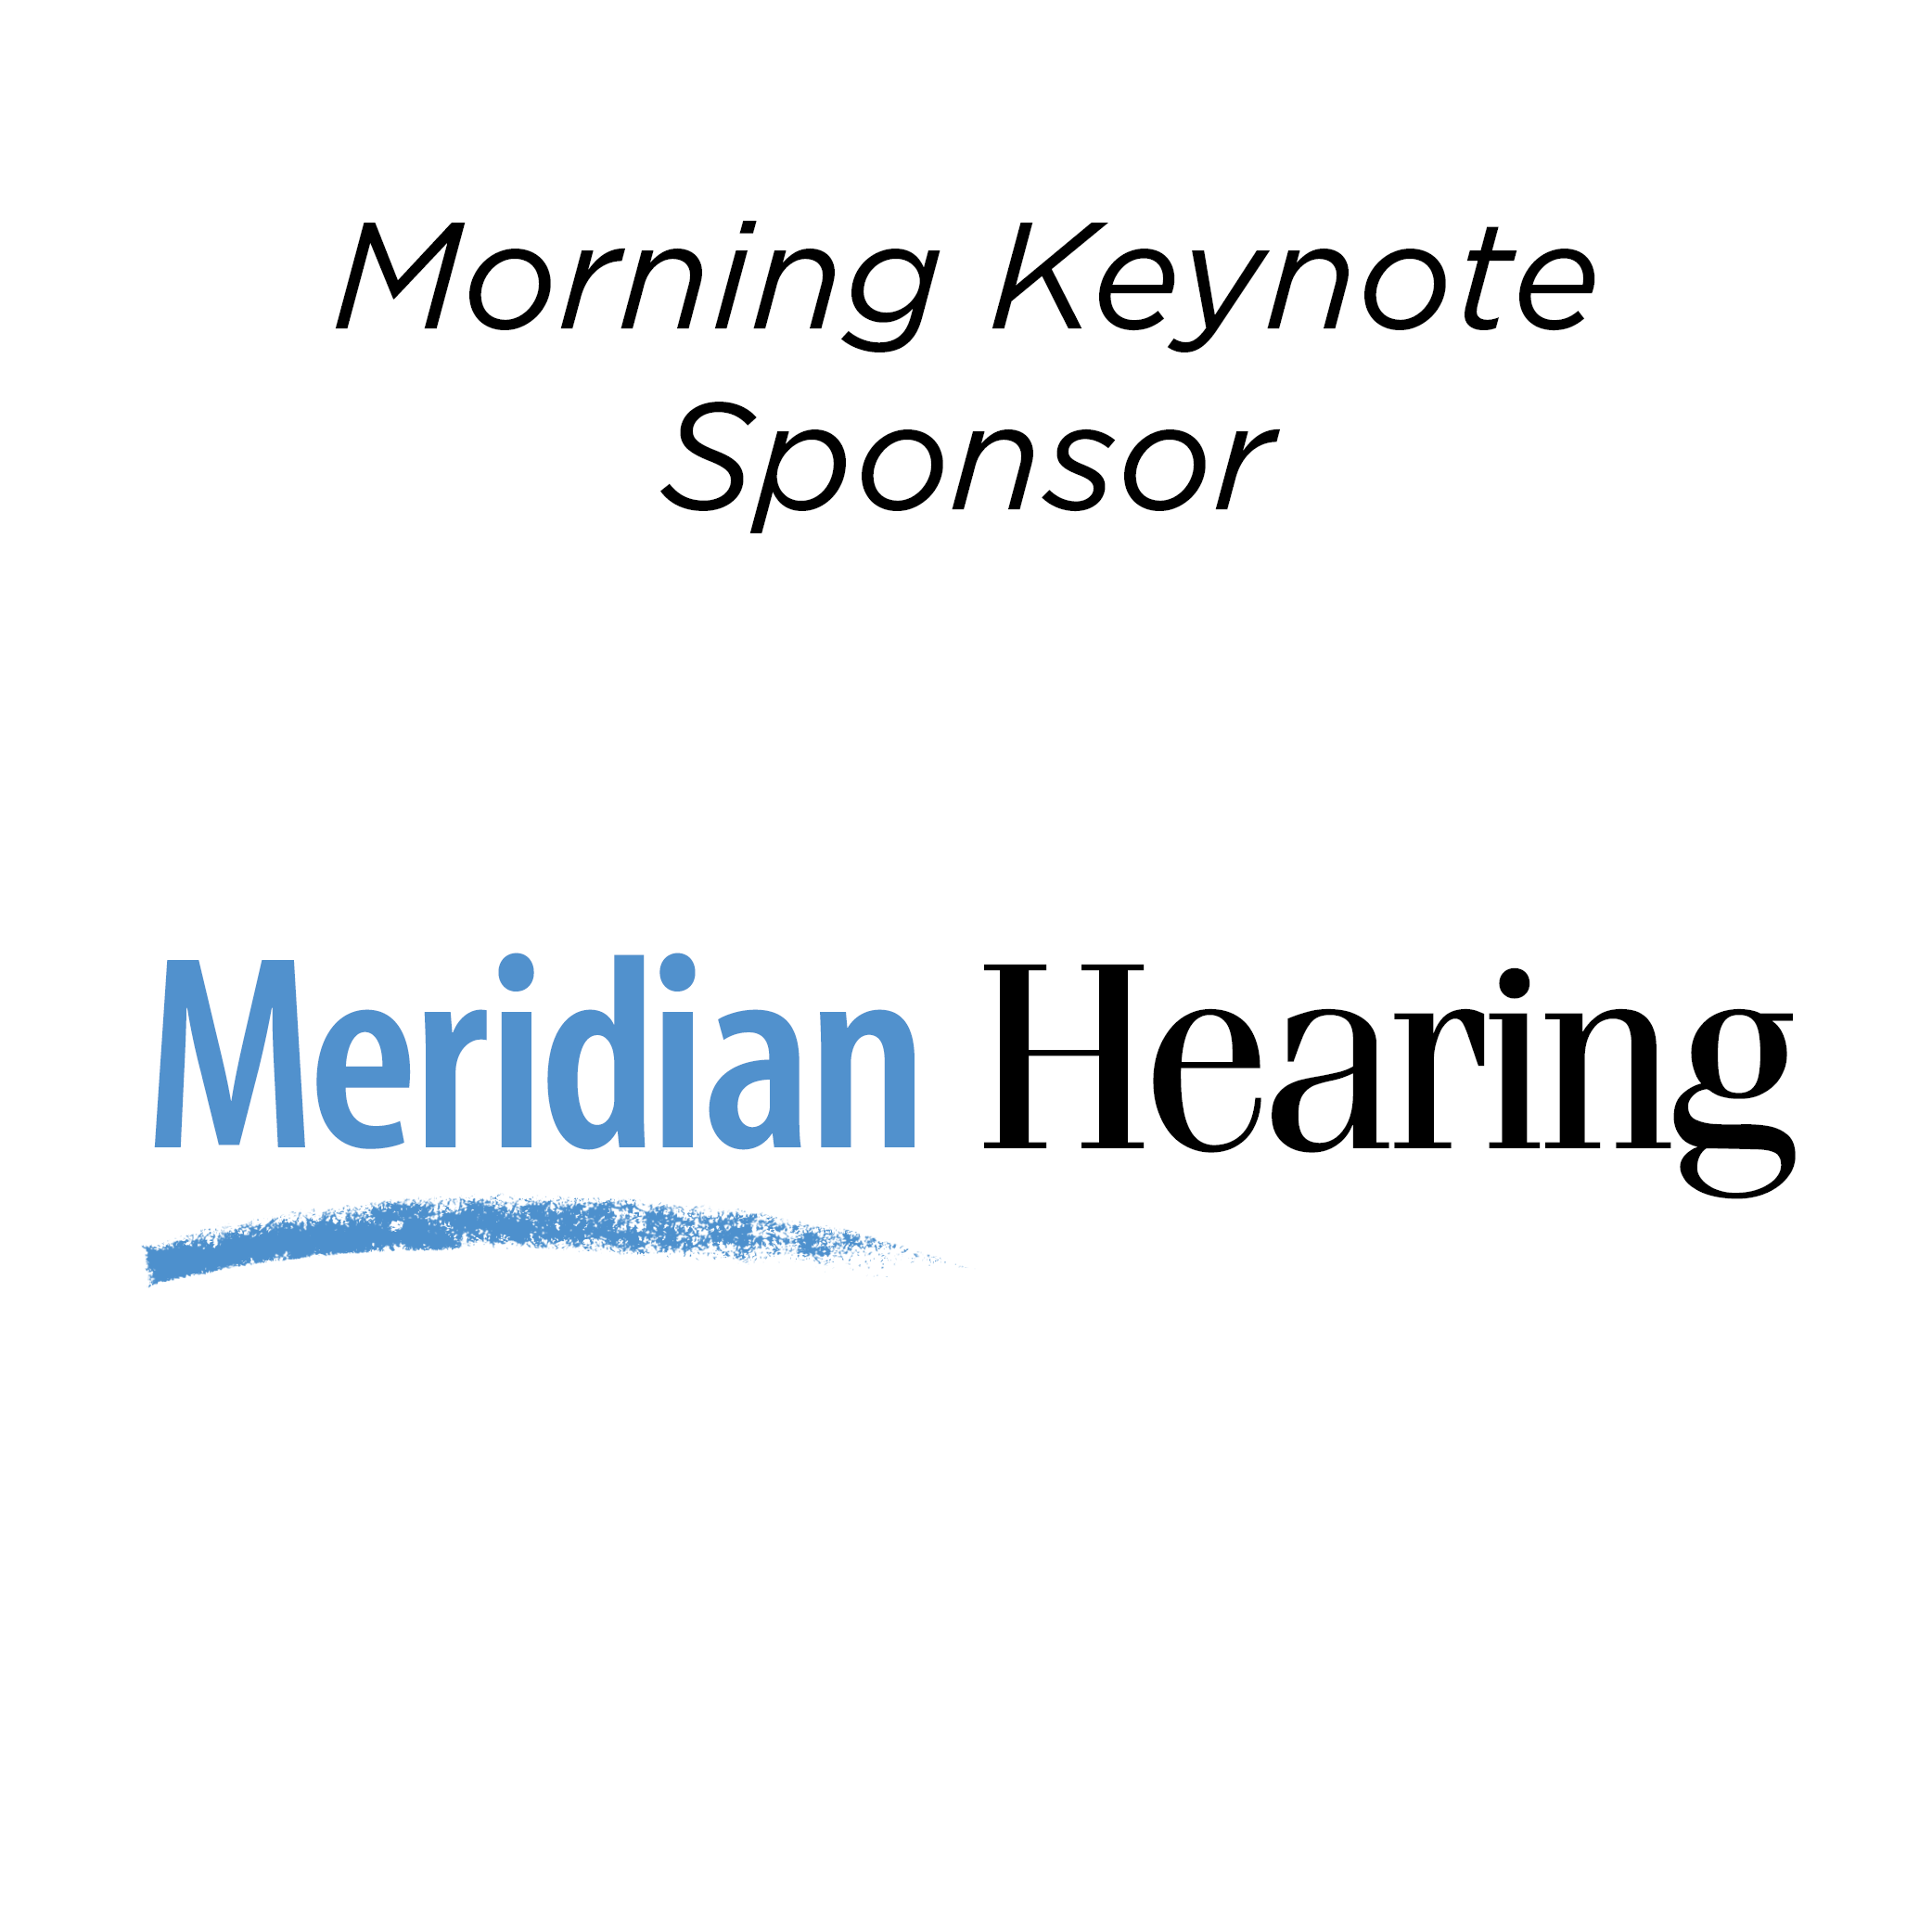 Meridian Hearing - Morning Keynote